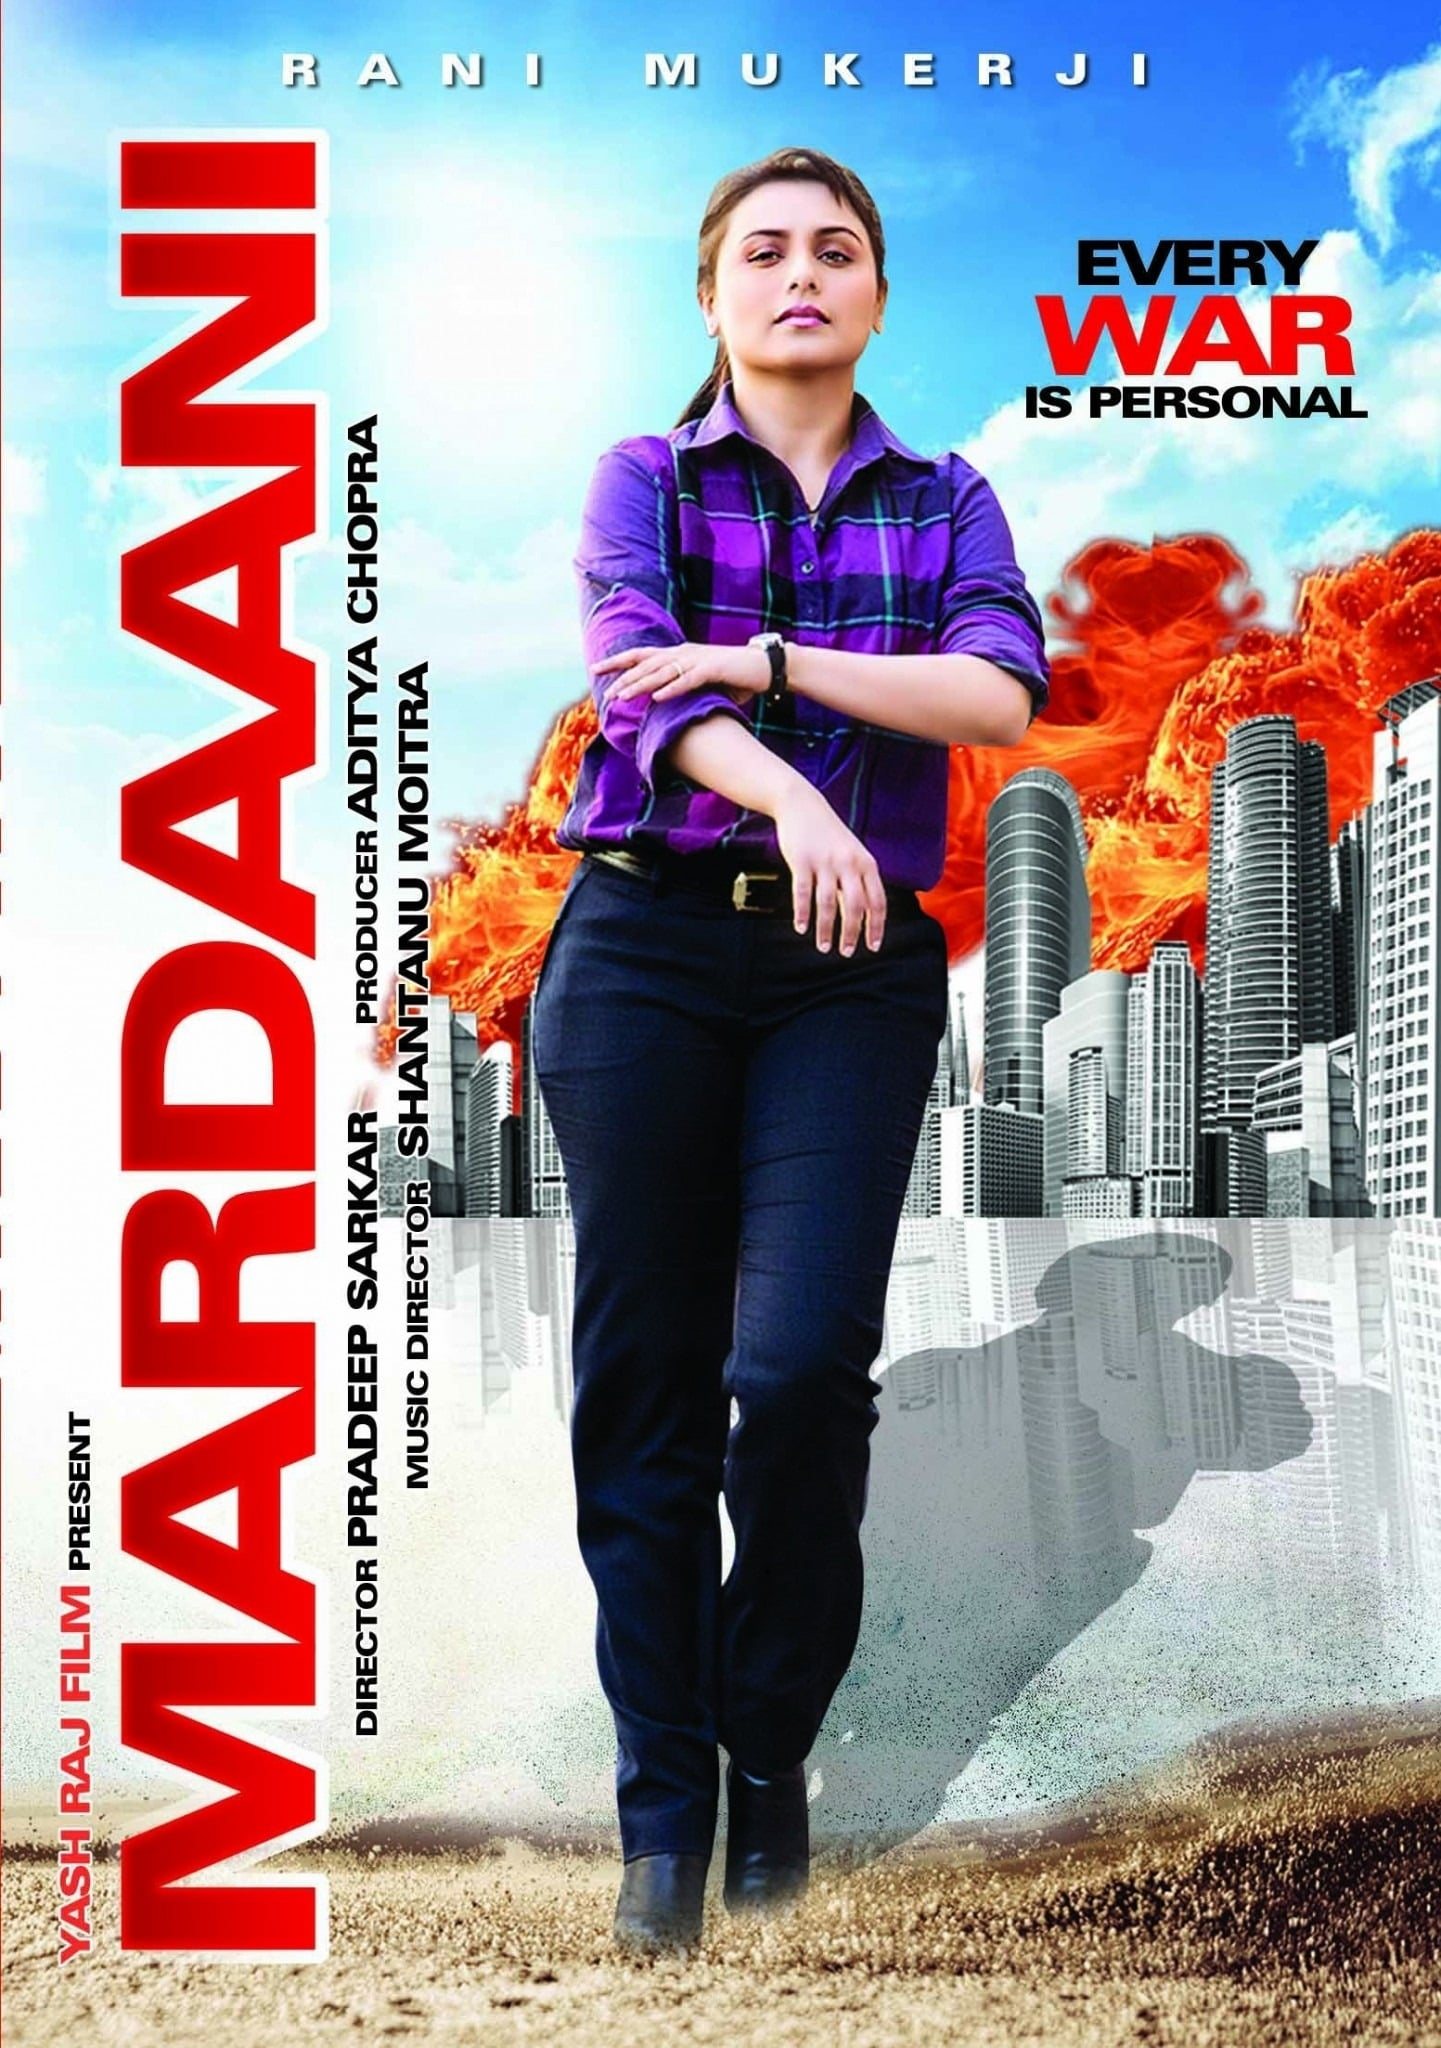 Mardaani 2014 BluRay x264 1080p [3.18 GB] 720p [1.01 GB] 480p [413 MB] [Hindi DD 5.1] | G-Drive